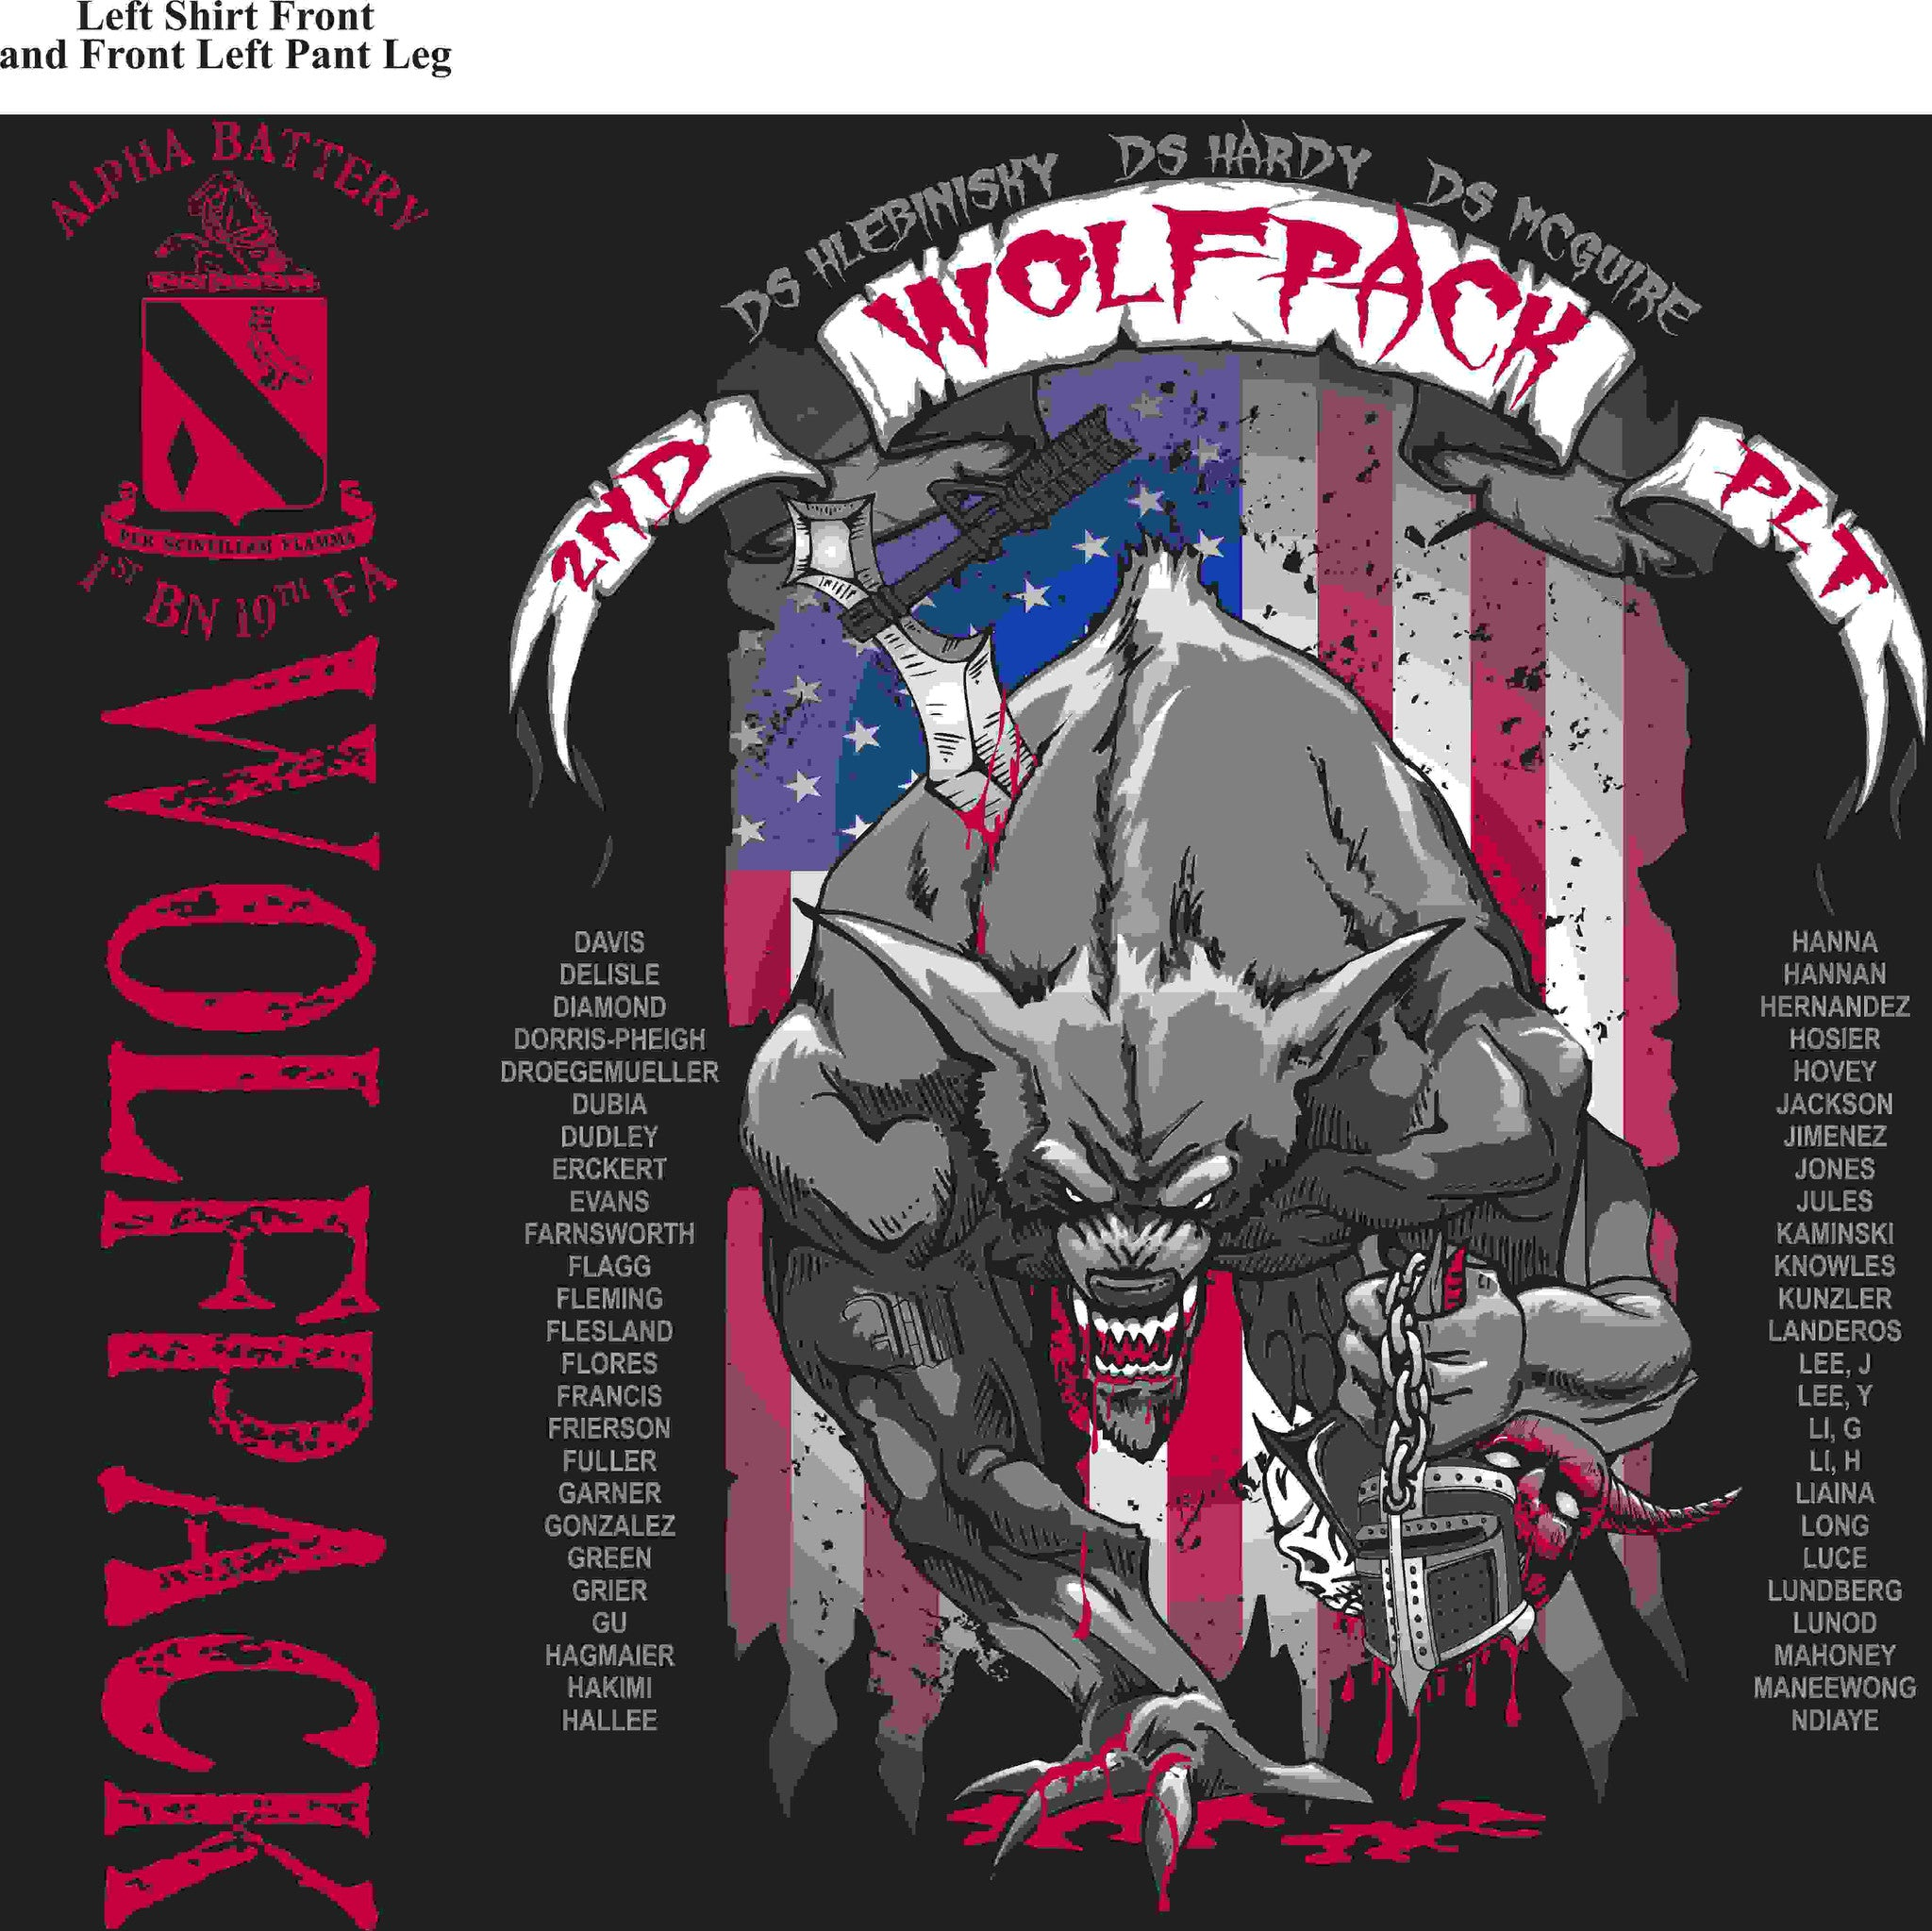 PLATOON SHIRTS (2nd generation print) ALPHA 1st 19th WOLFPACK MAR 2016